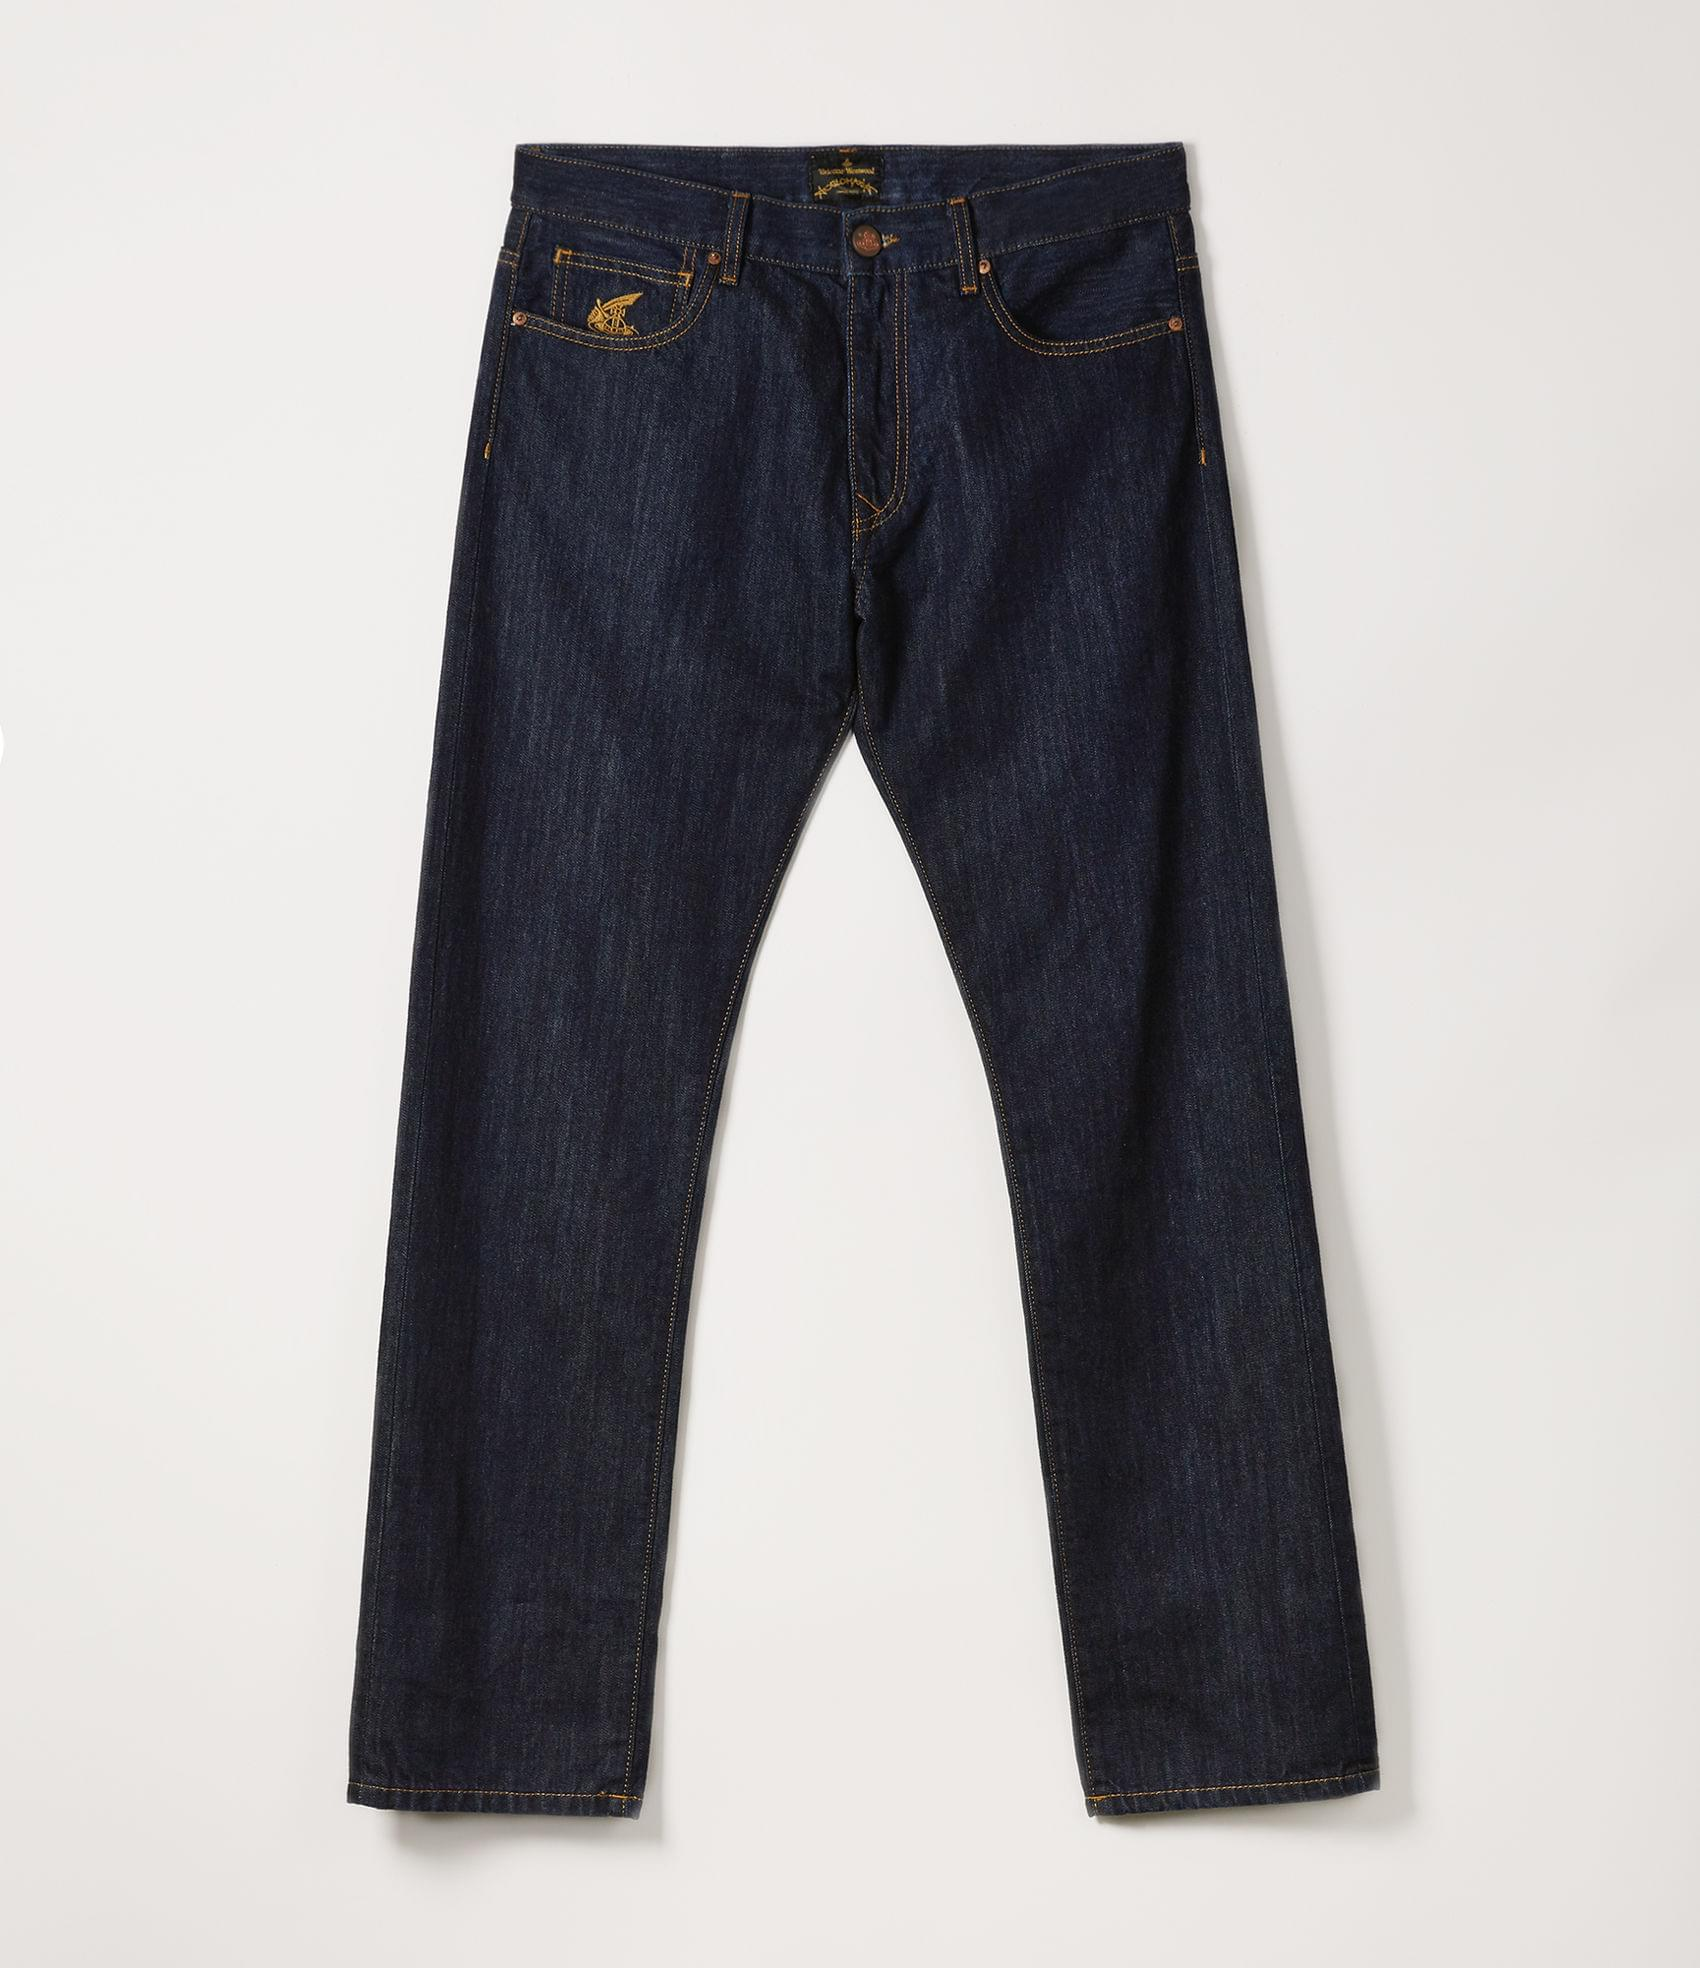 Vivienne Westwood CLASSIC TAPERED JEANS BLUE DENIM